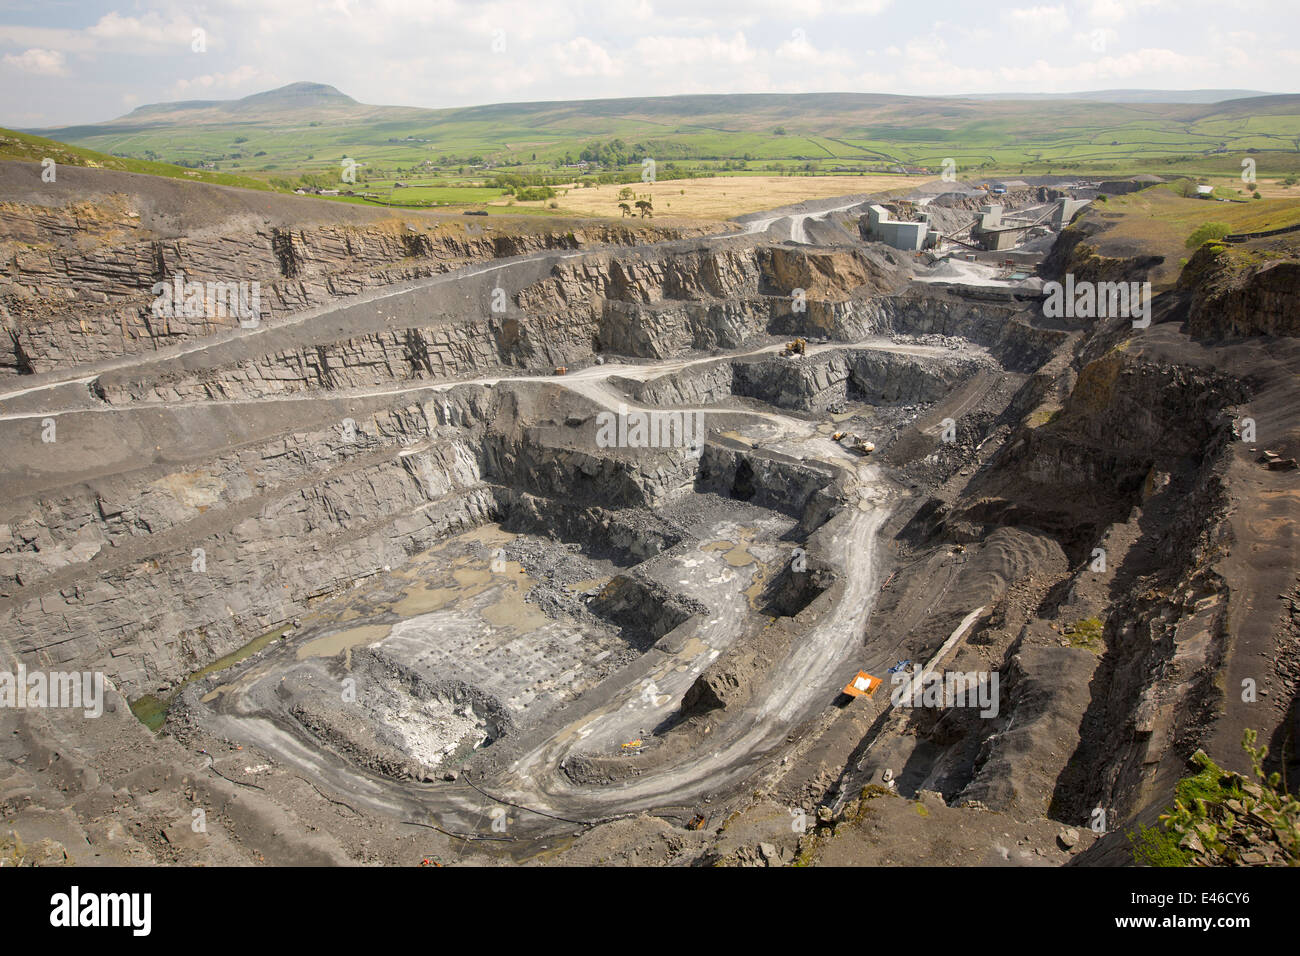 Dry Rigg Quarry at Helwith Bridge in the Yorkshire Dales National Park, UK. - Stock Image